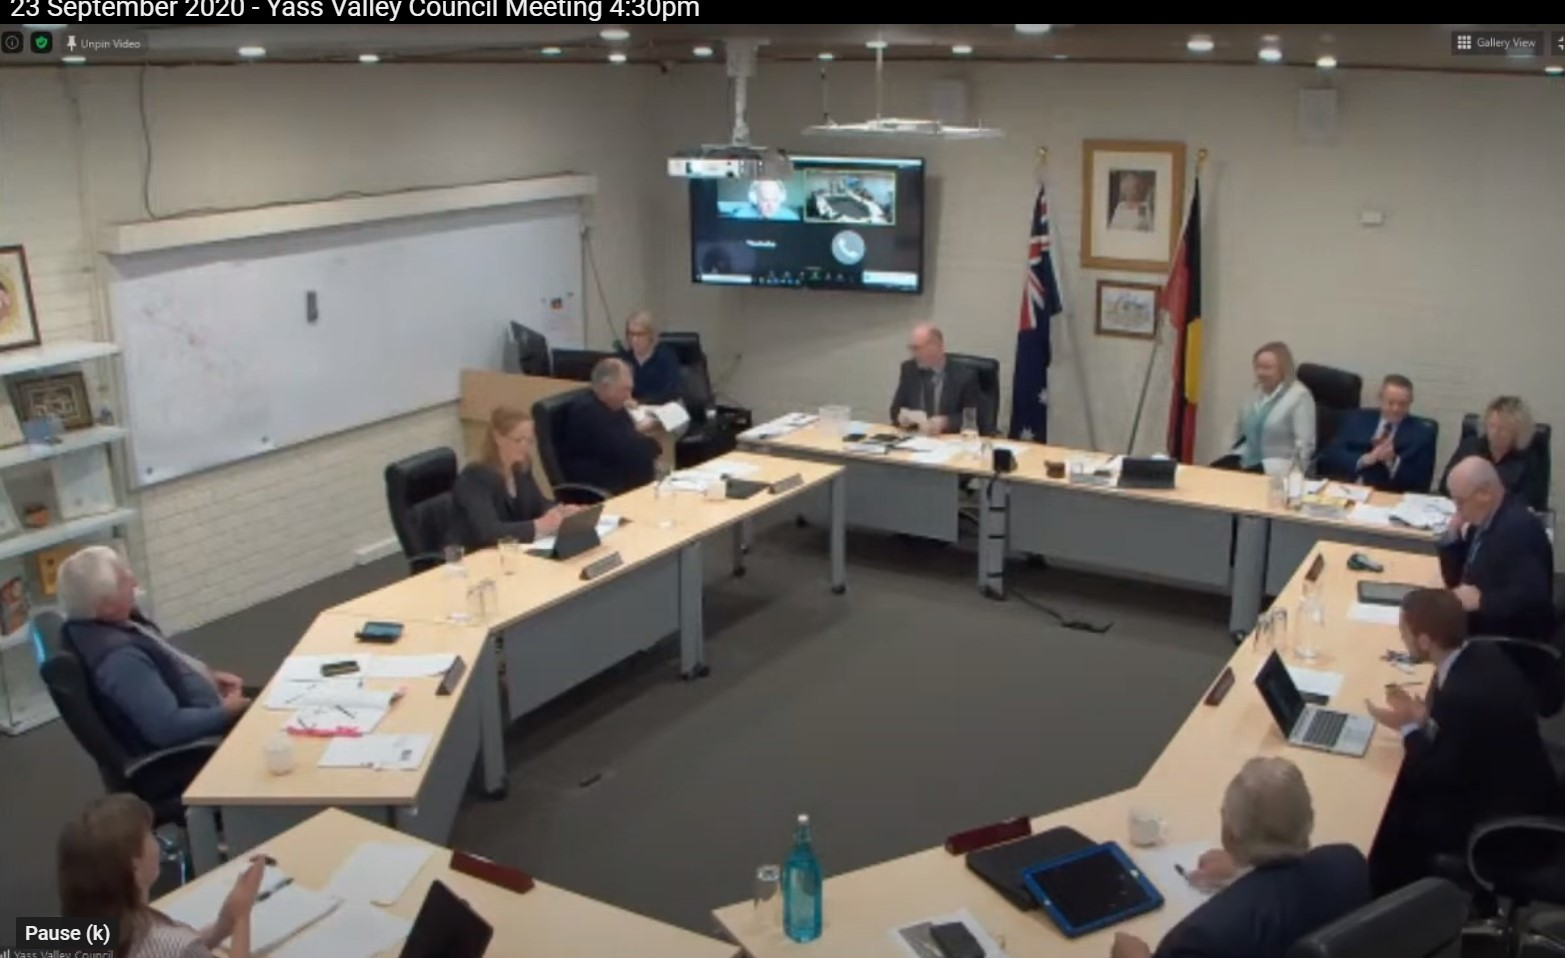 Councillors applaud Rowena Abbey's re-election to the position of Mayor at the September 2020 Yass Valley Council meeting yesterday afternoon